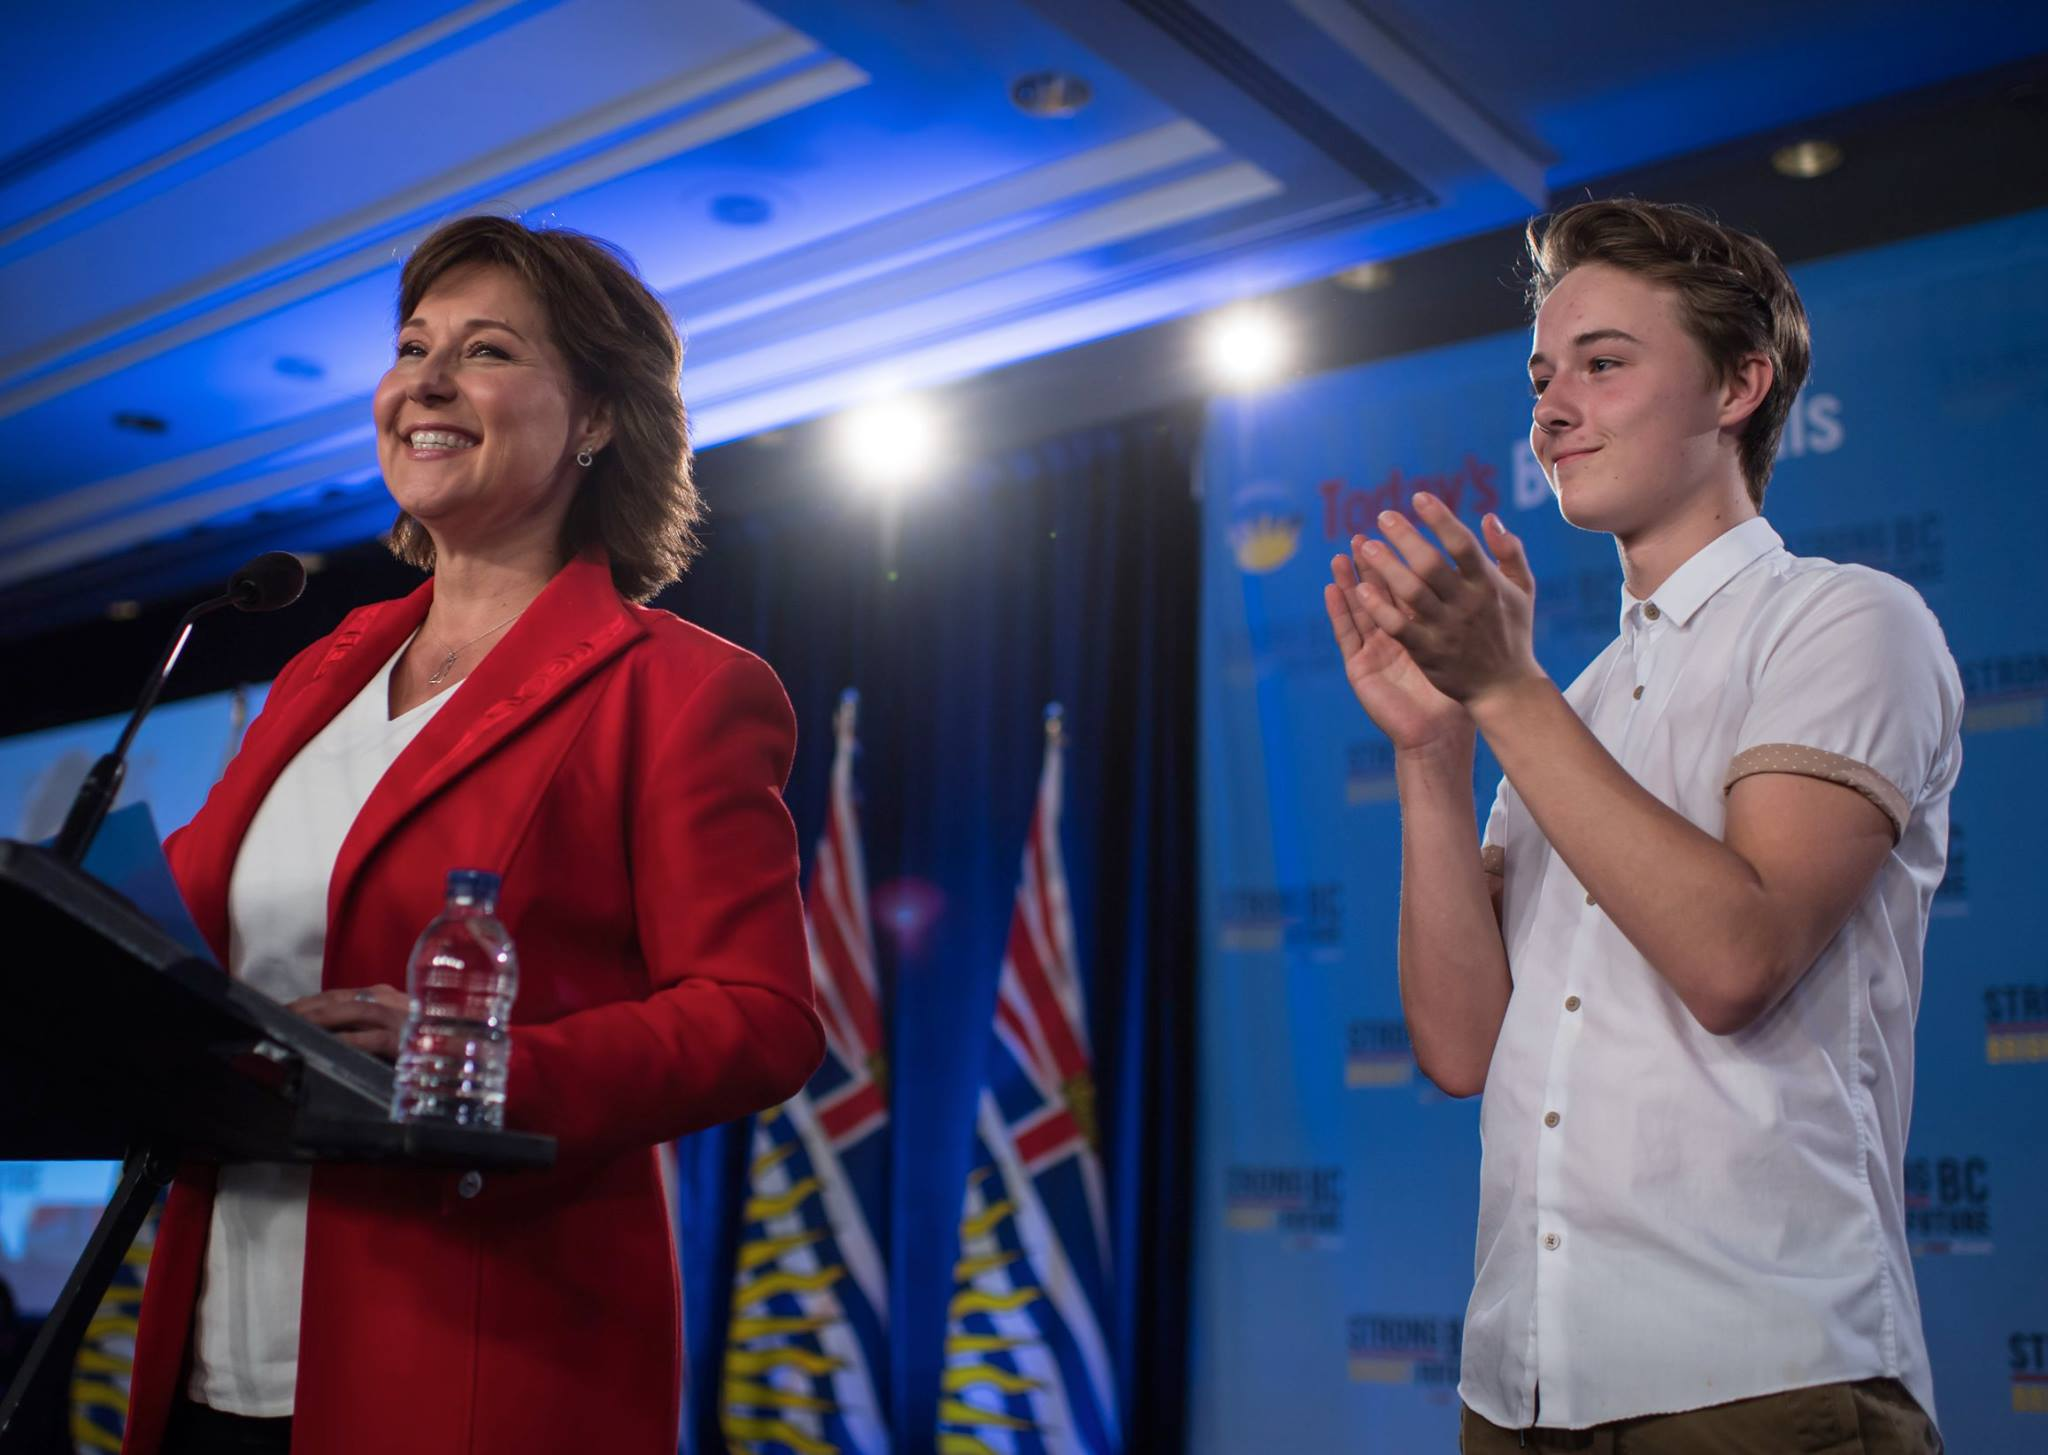 BC Liberals leader Christy Clark giving her election night speech with son Hamish at her side (Christy Clark/Facebook)